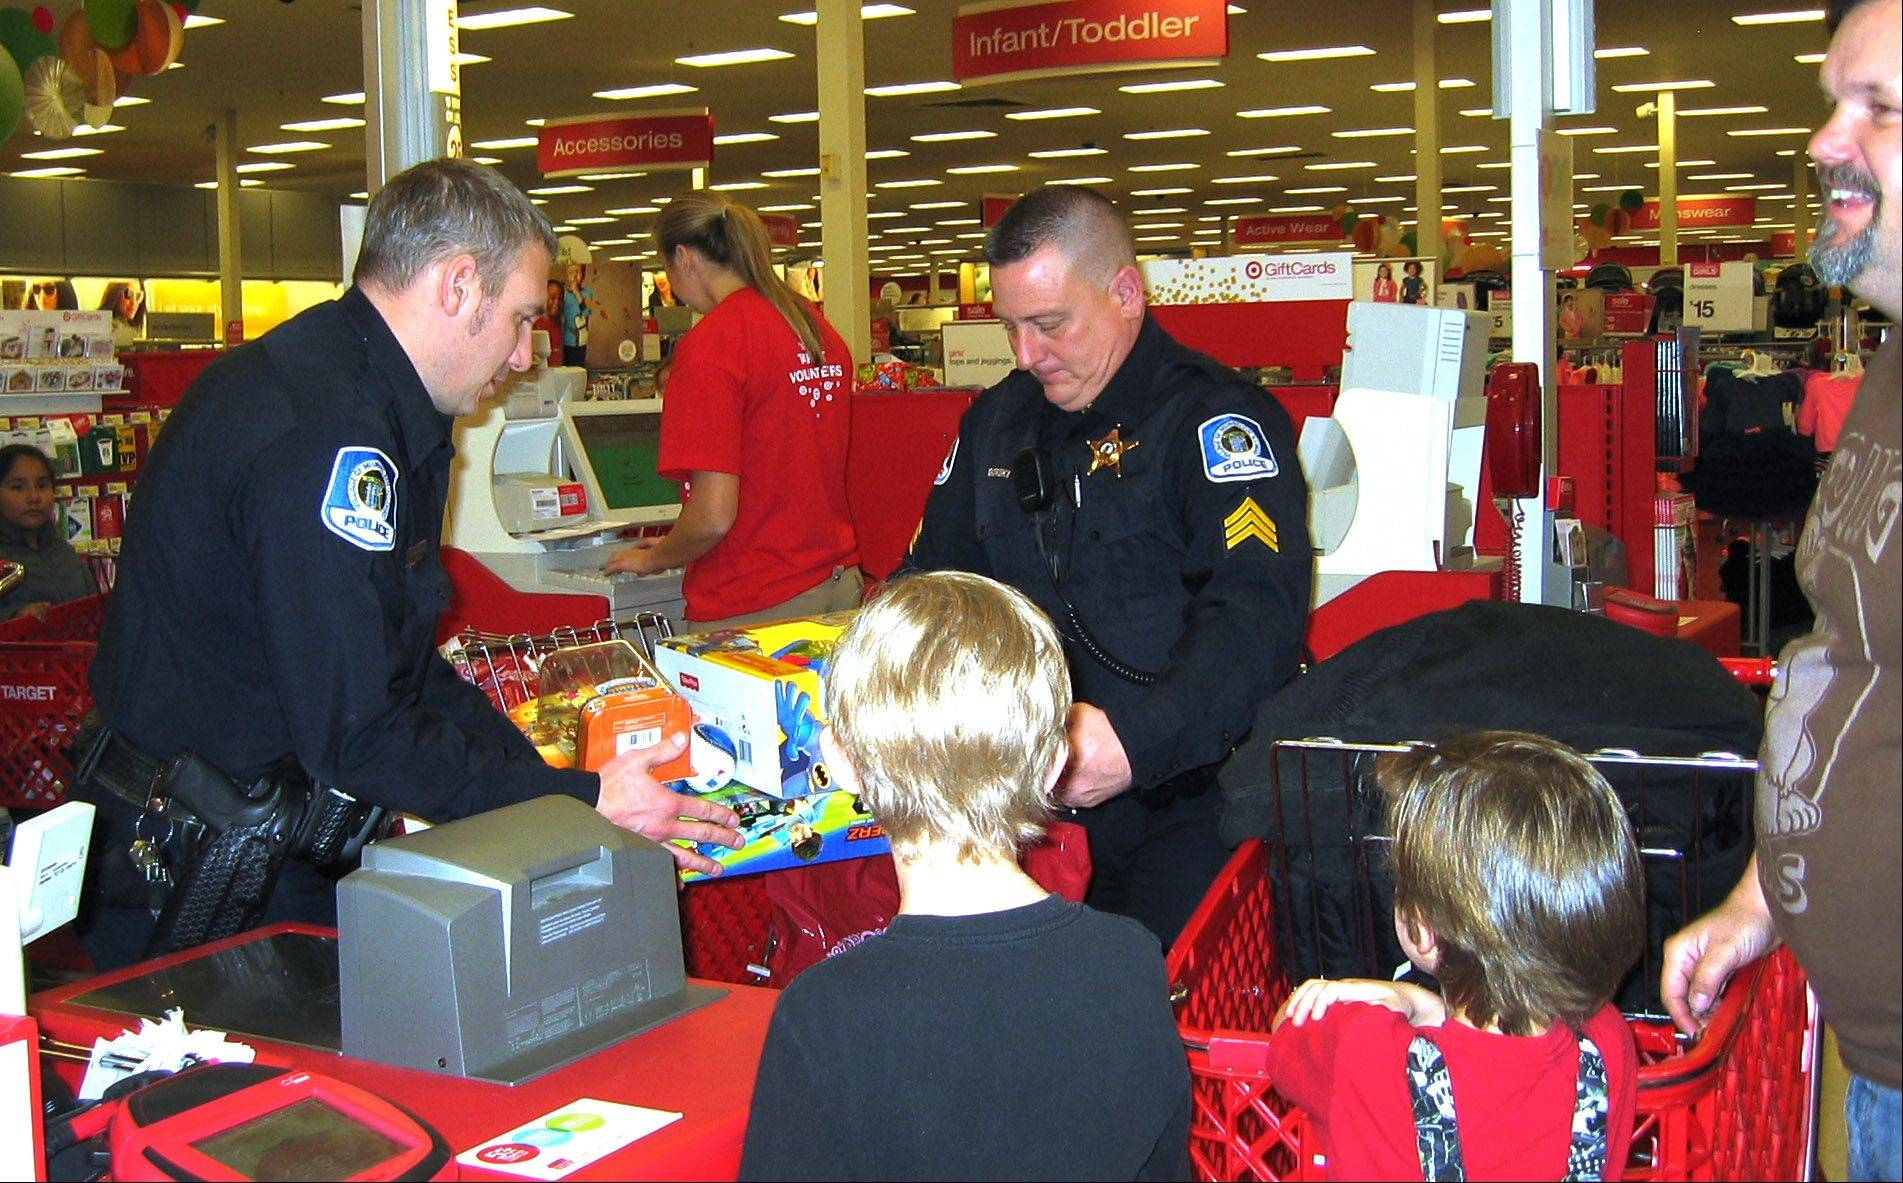 Officer Tony Glogovsky, left, and Sgt. Dan Gorski volunteered to participate in the village of Mundelein´s annual Shop With A Cop program. Thanks to the generosity of village businesses and residents, a record number of children were able to participate in this holiday tradition.